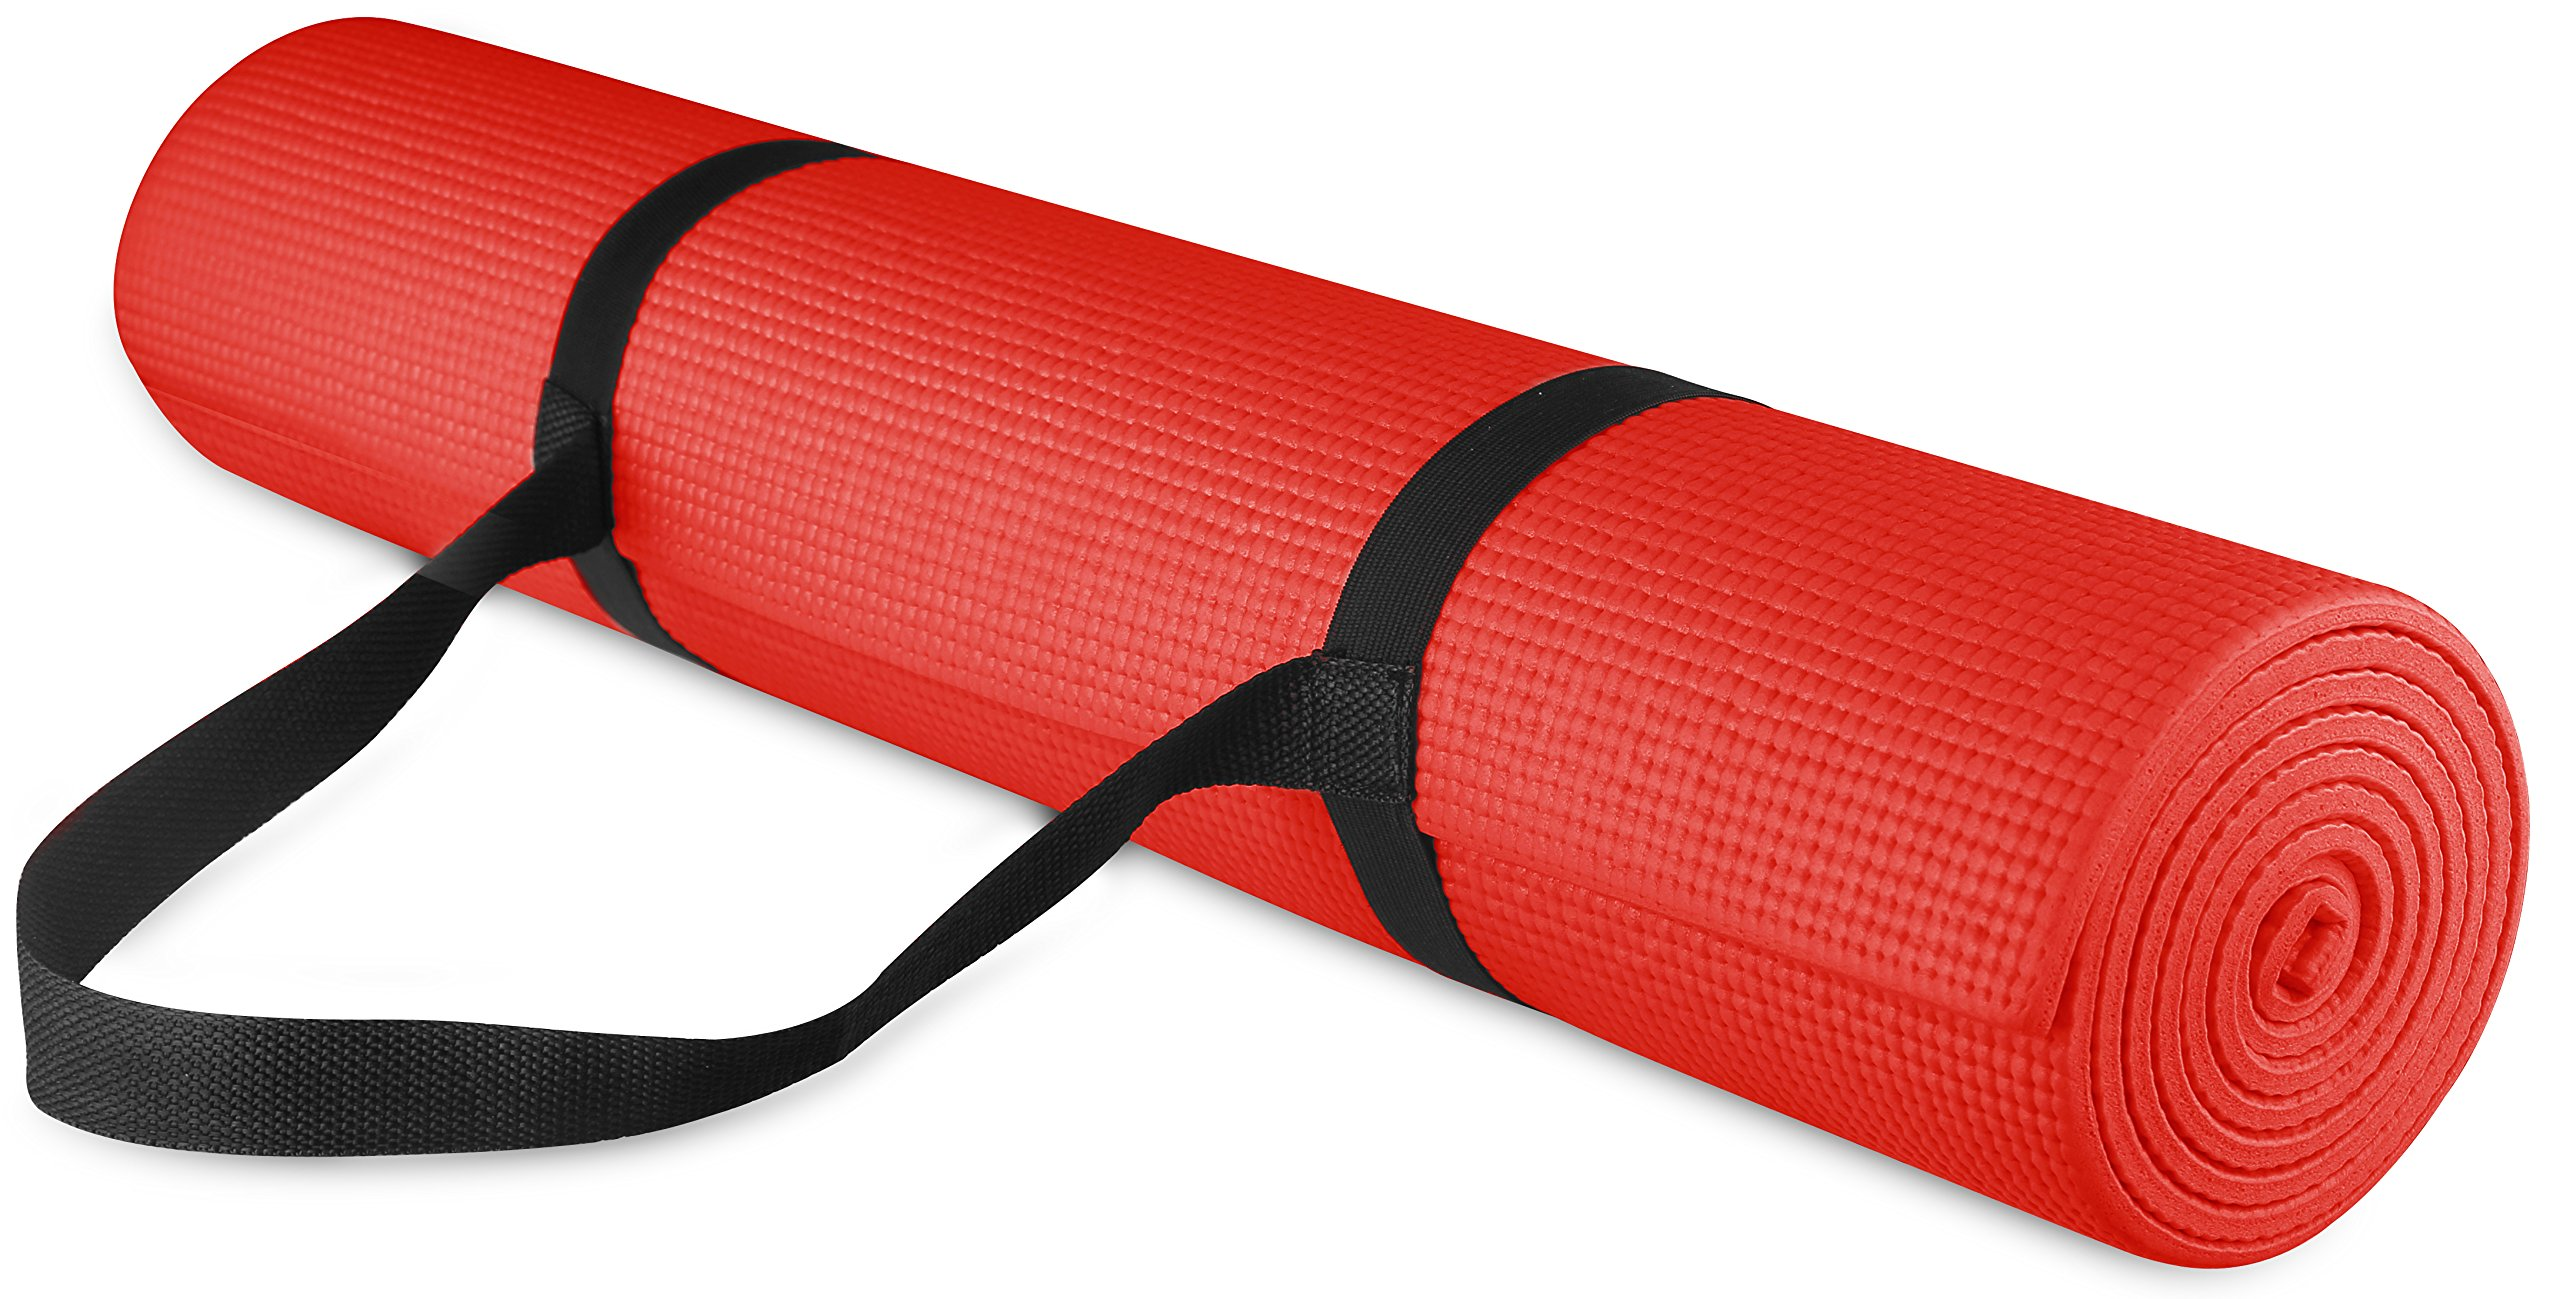 BalanceFrom GoYoga All Purpose High Density Non-Slip Exercise Yoga Mat with Carrying Strap, 1/4'', Red by BalanceFrom